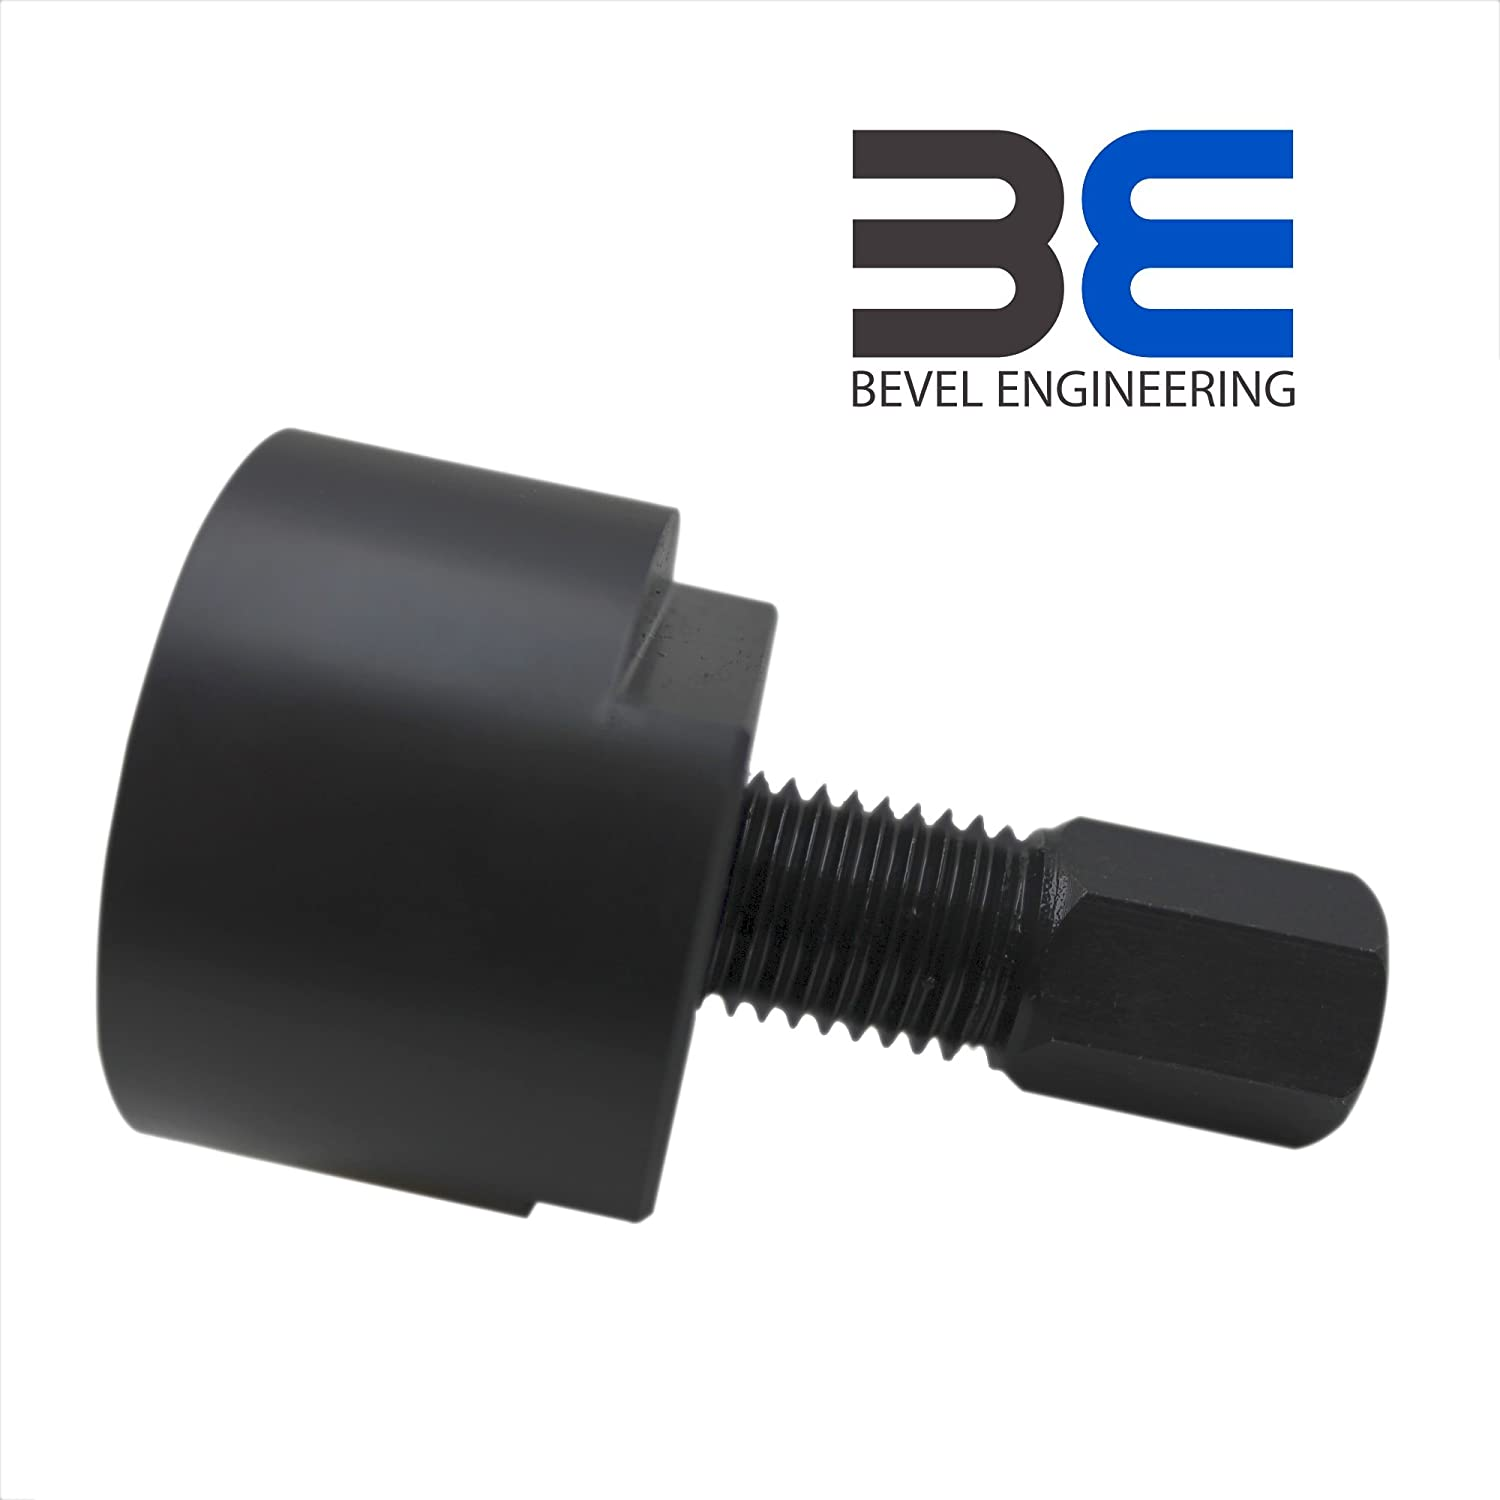 Bevel Engineering Improved New Flywheel Puller For Polaris RZR XP 900/1000/570 LH 50mm 1.5